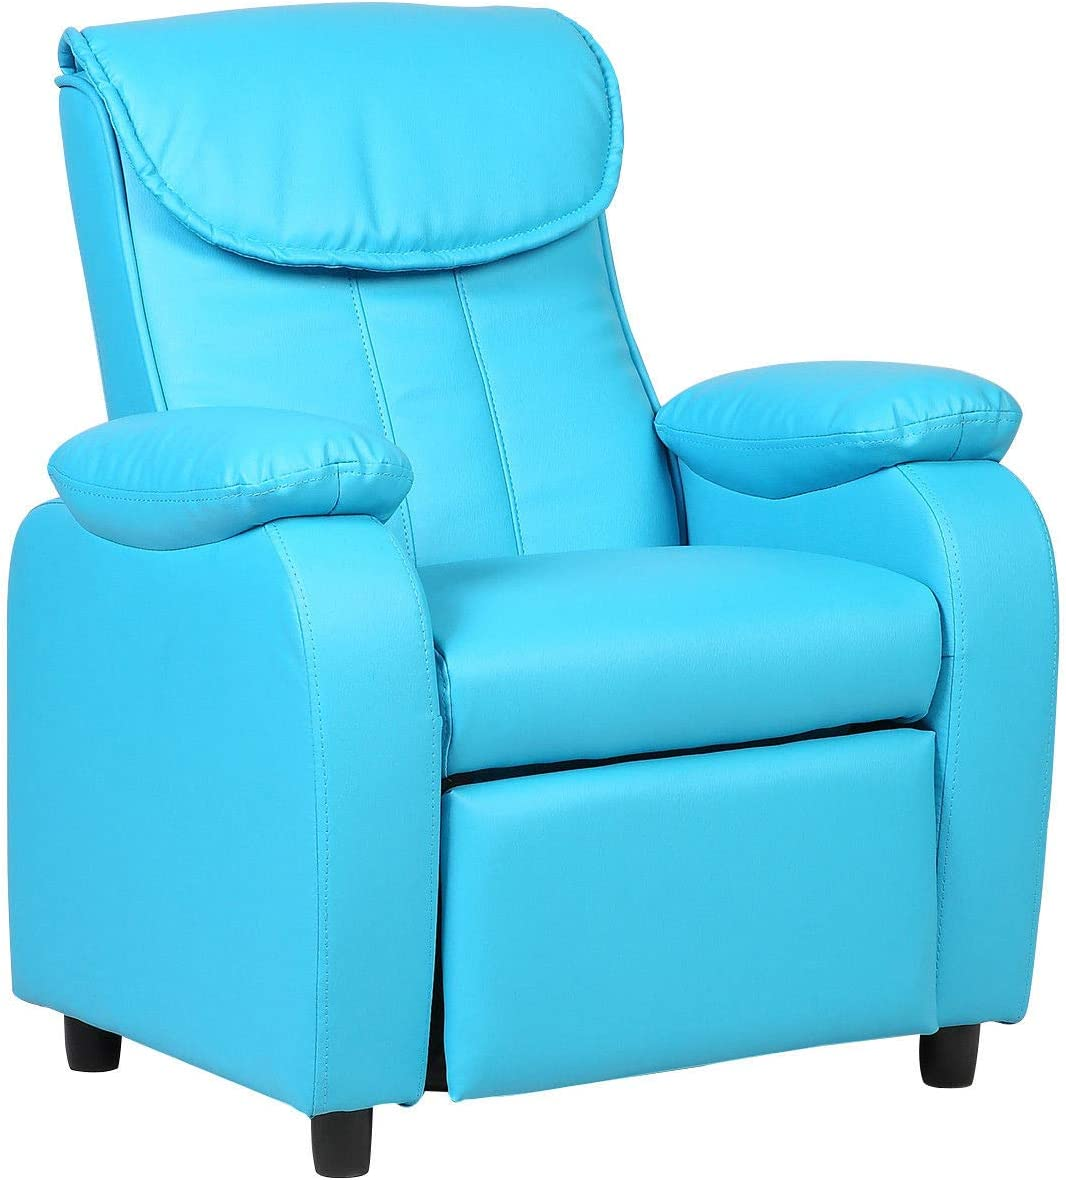 Costzon FWAM-00786 Blue Deluxe Children Recliner Sofa Armrest Chair Living Room Bedroom Couch Home Furniture